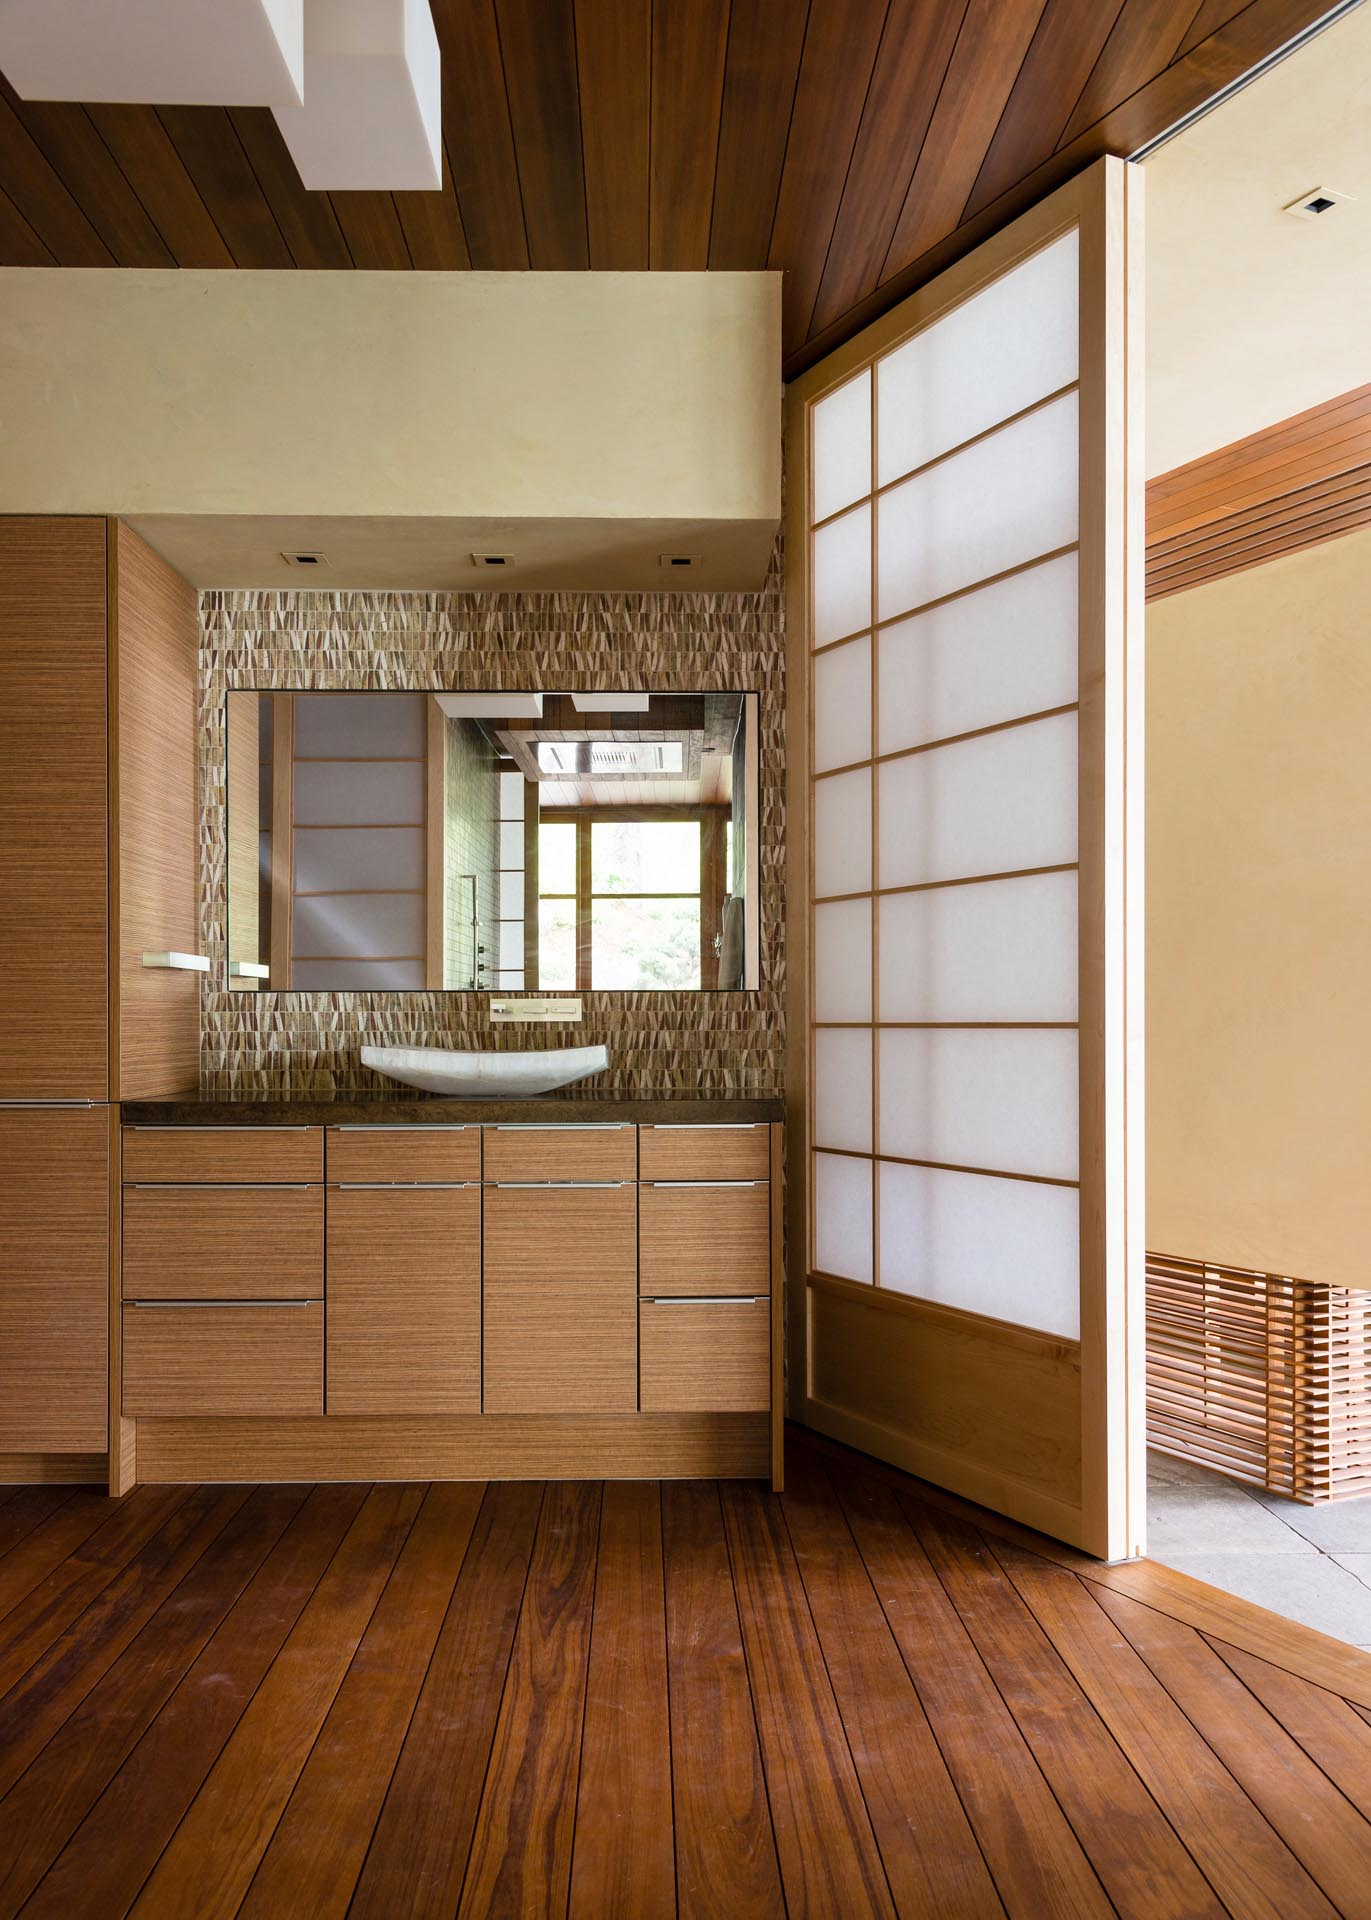 In this bathroom, decorative natural with earthy colors provides a backdrop for the mirror, while a sliding screen door lets the light from the nearby window travel through to the interior space.